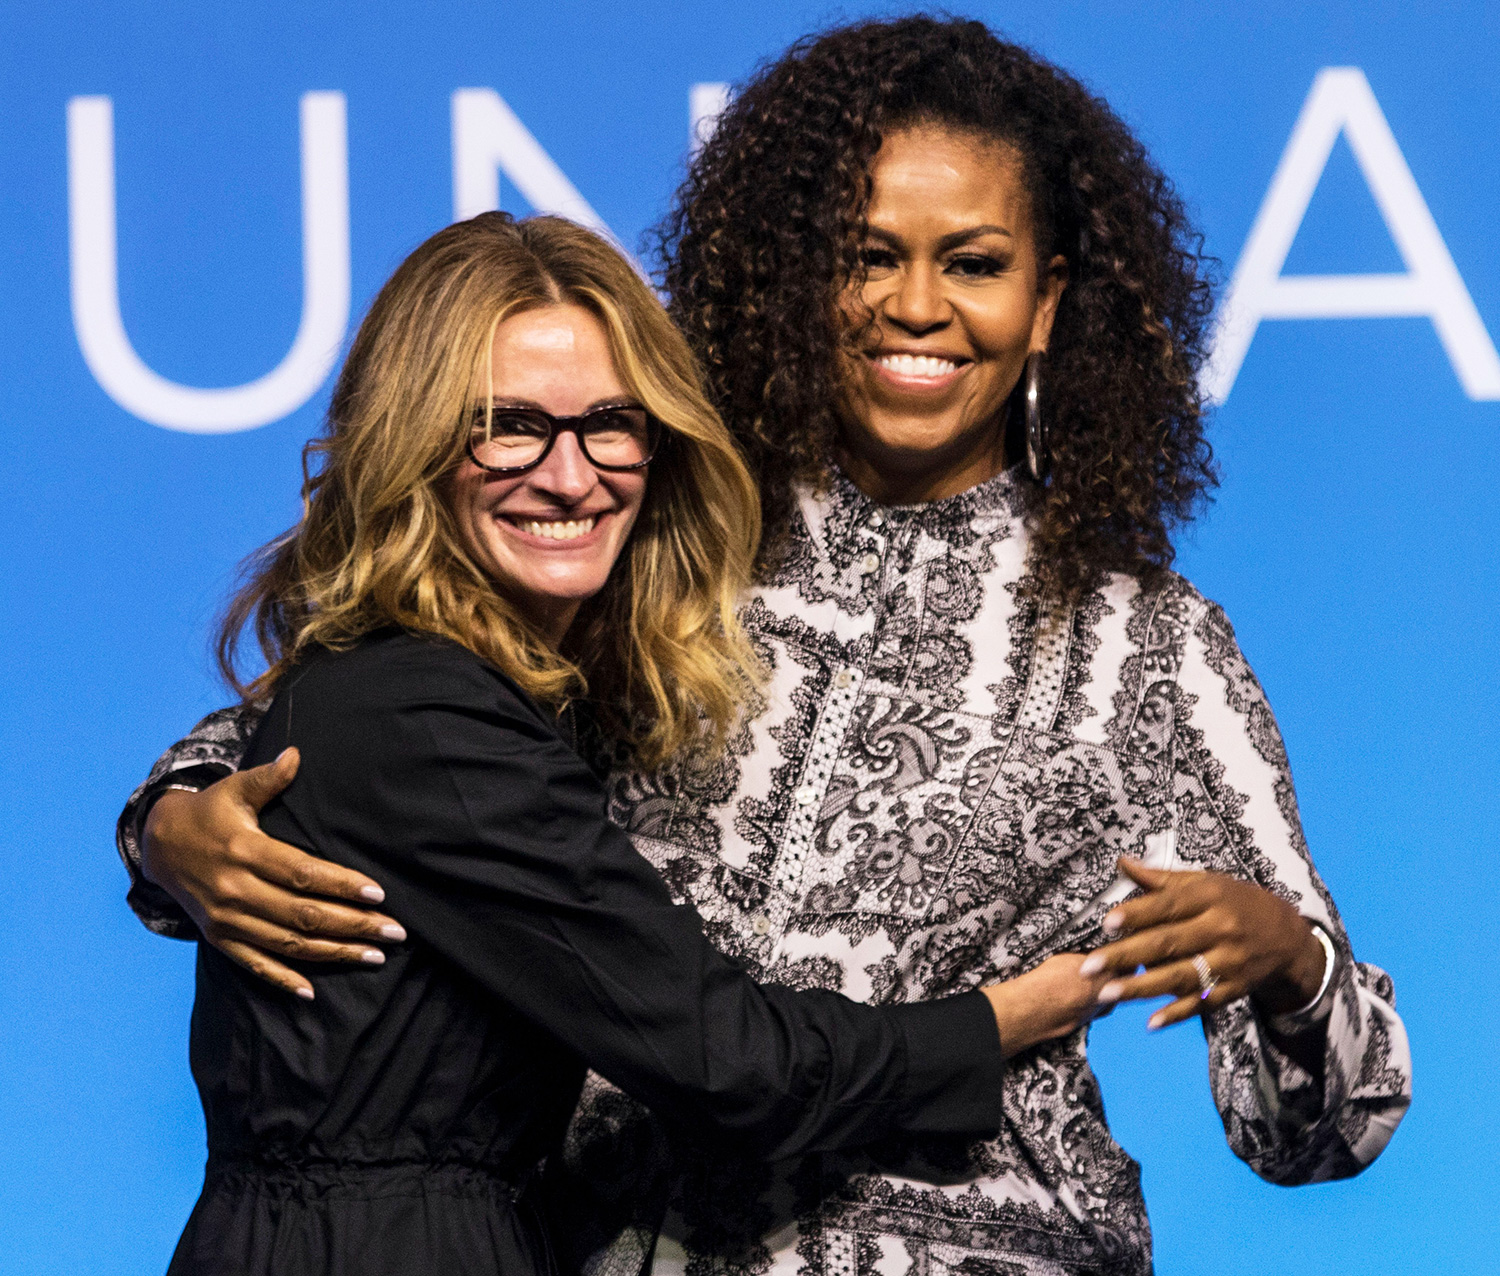 Former US first lady Michelle Obama (R) hugs US actress Julia Roberts at the end of an Obama Foundation event in Kuala Lumpur, Malaysia, 12 December 2019. Obama Foundation event in Kuala Lumpur, Malaysia - 12 Dec 2019